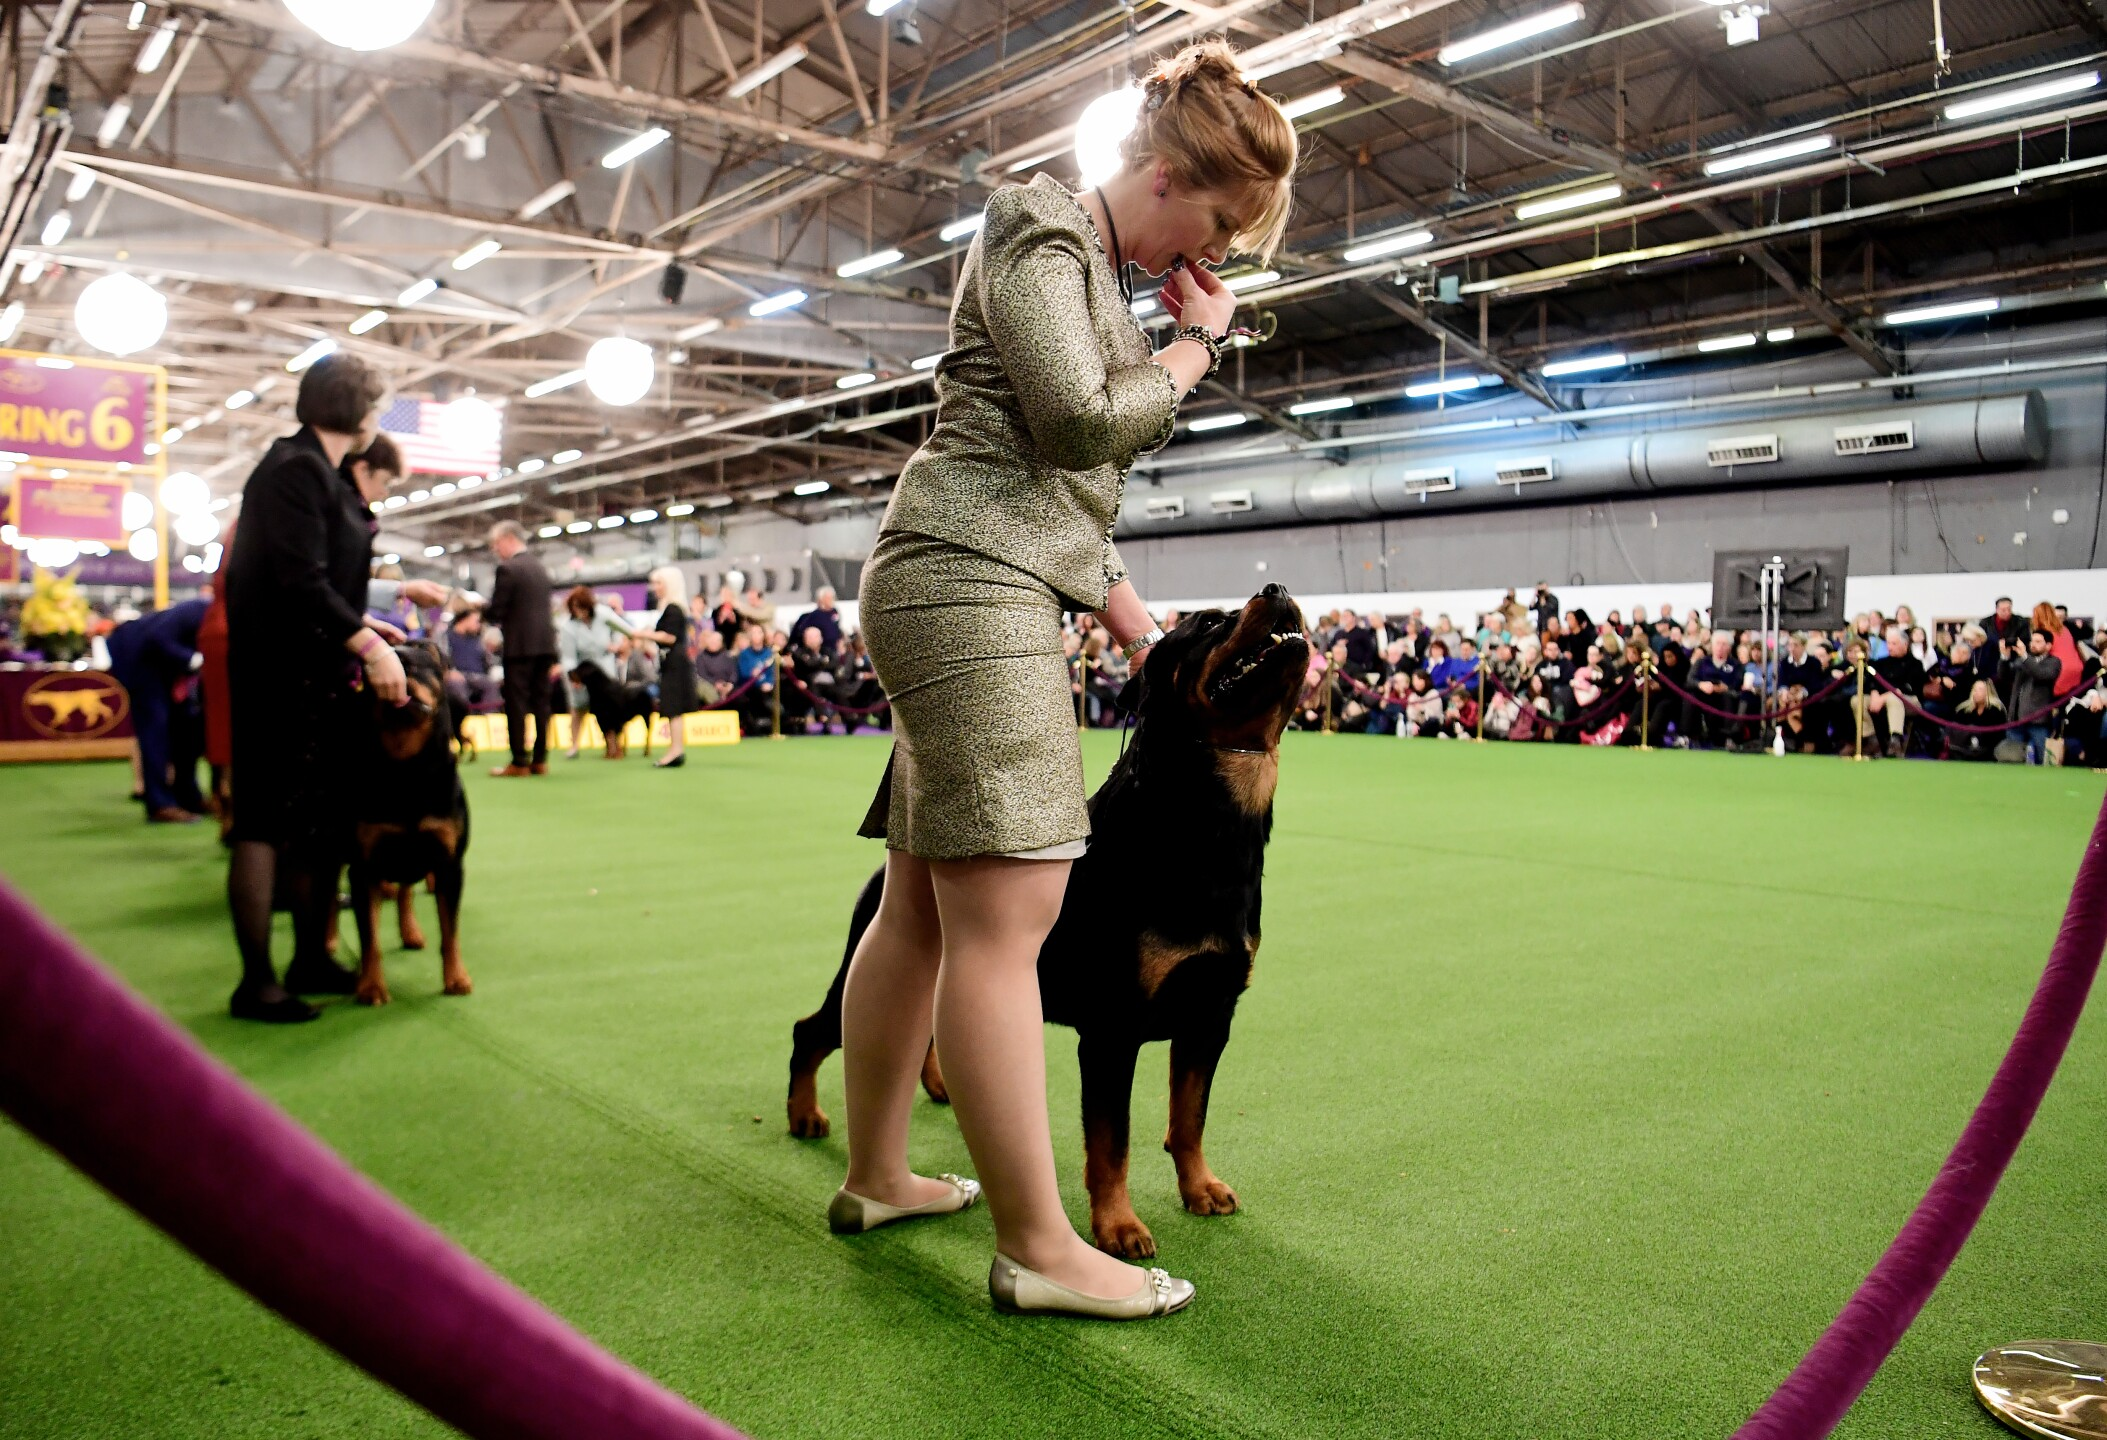 Westminster Kennel Club Hosts Its Annual Dog Show In New York